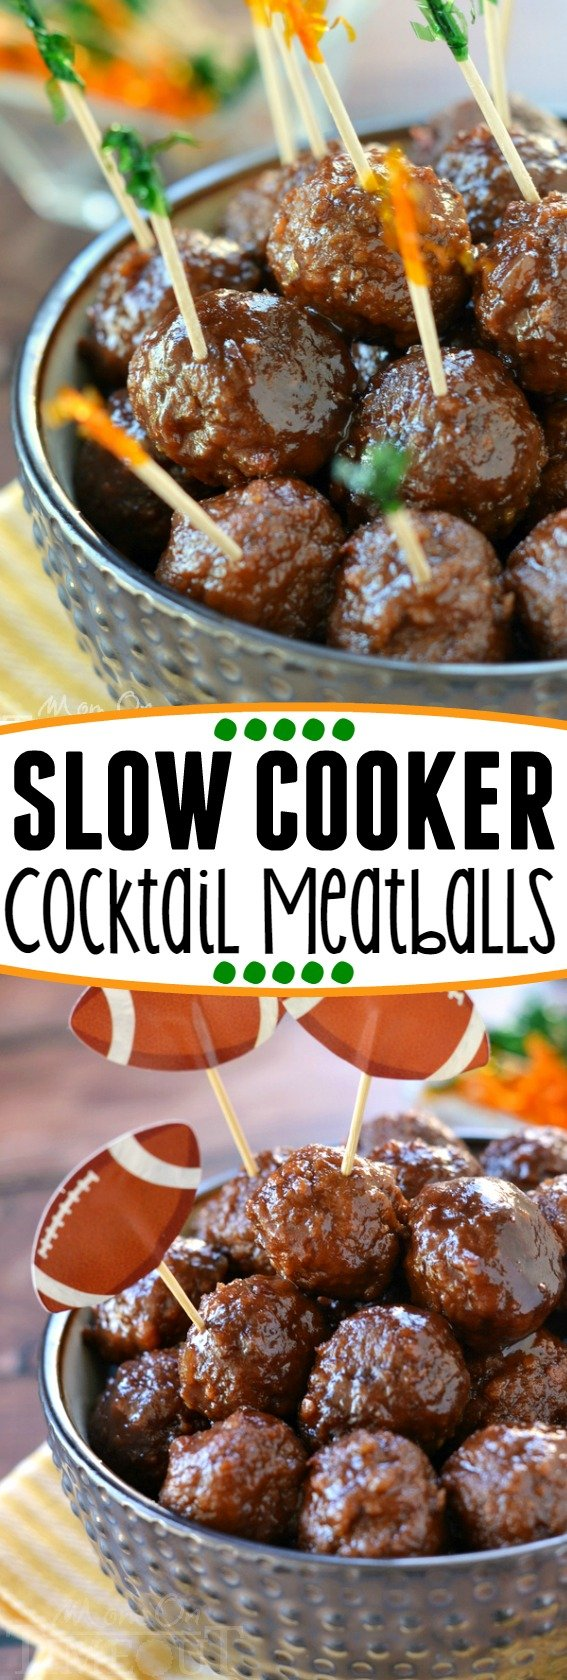 These Slow Cooker Cocktail Meatballs are made with just three ingredients! Guaranteed to be a hit at your next party! | MomOnTimeout.com| #slow #cooker #crockpot #recipe #dinner #appetizer #easy